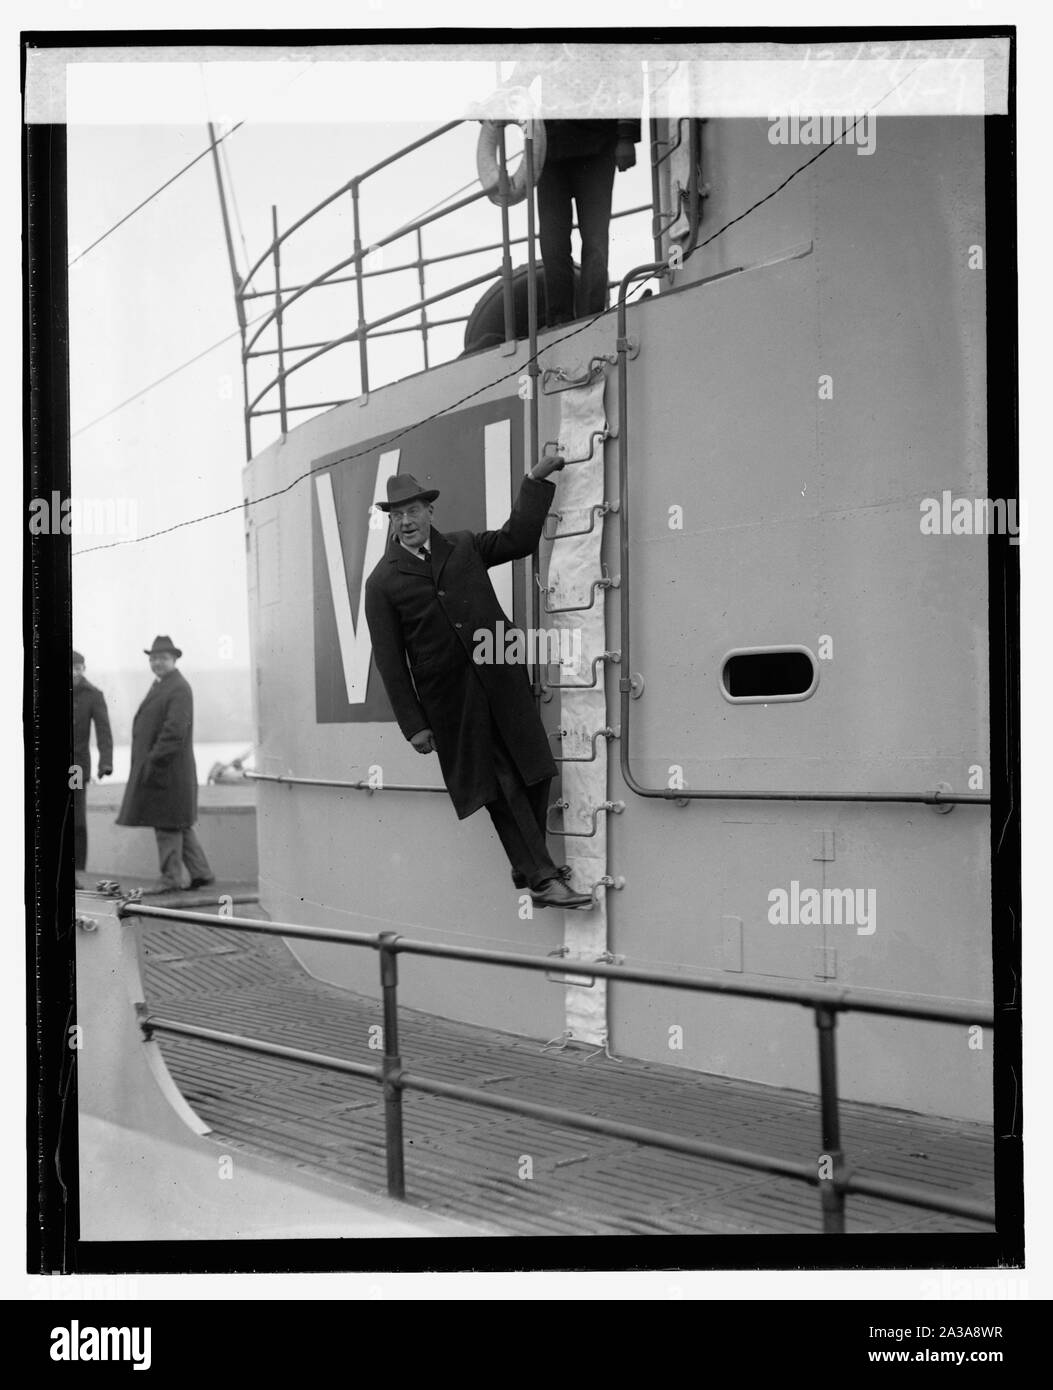 Sec. Wilbur inspecting Sub. V-1 at Navy Yard, 12/3/24 Stock Photo